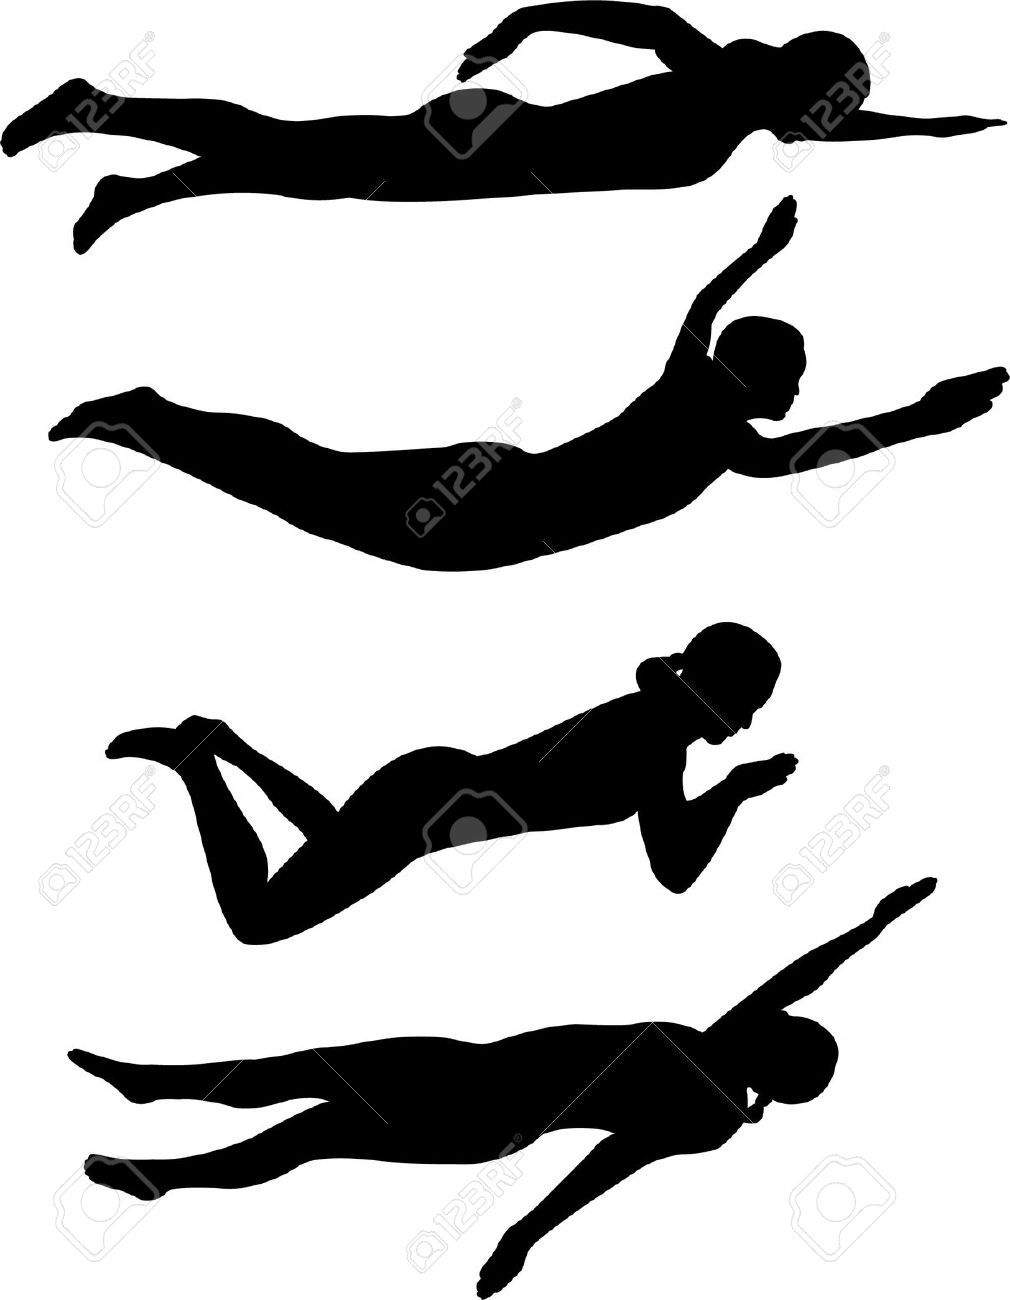 Image result for Competitive Swimming Clip Art Silhouette.